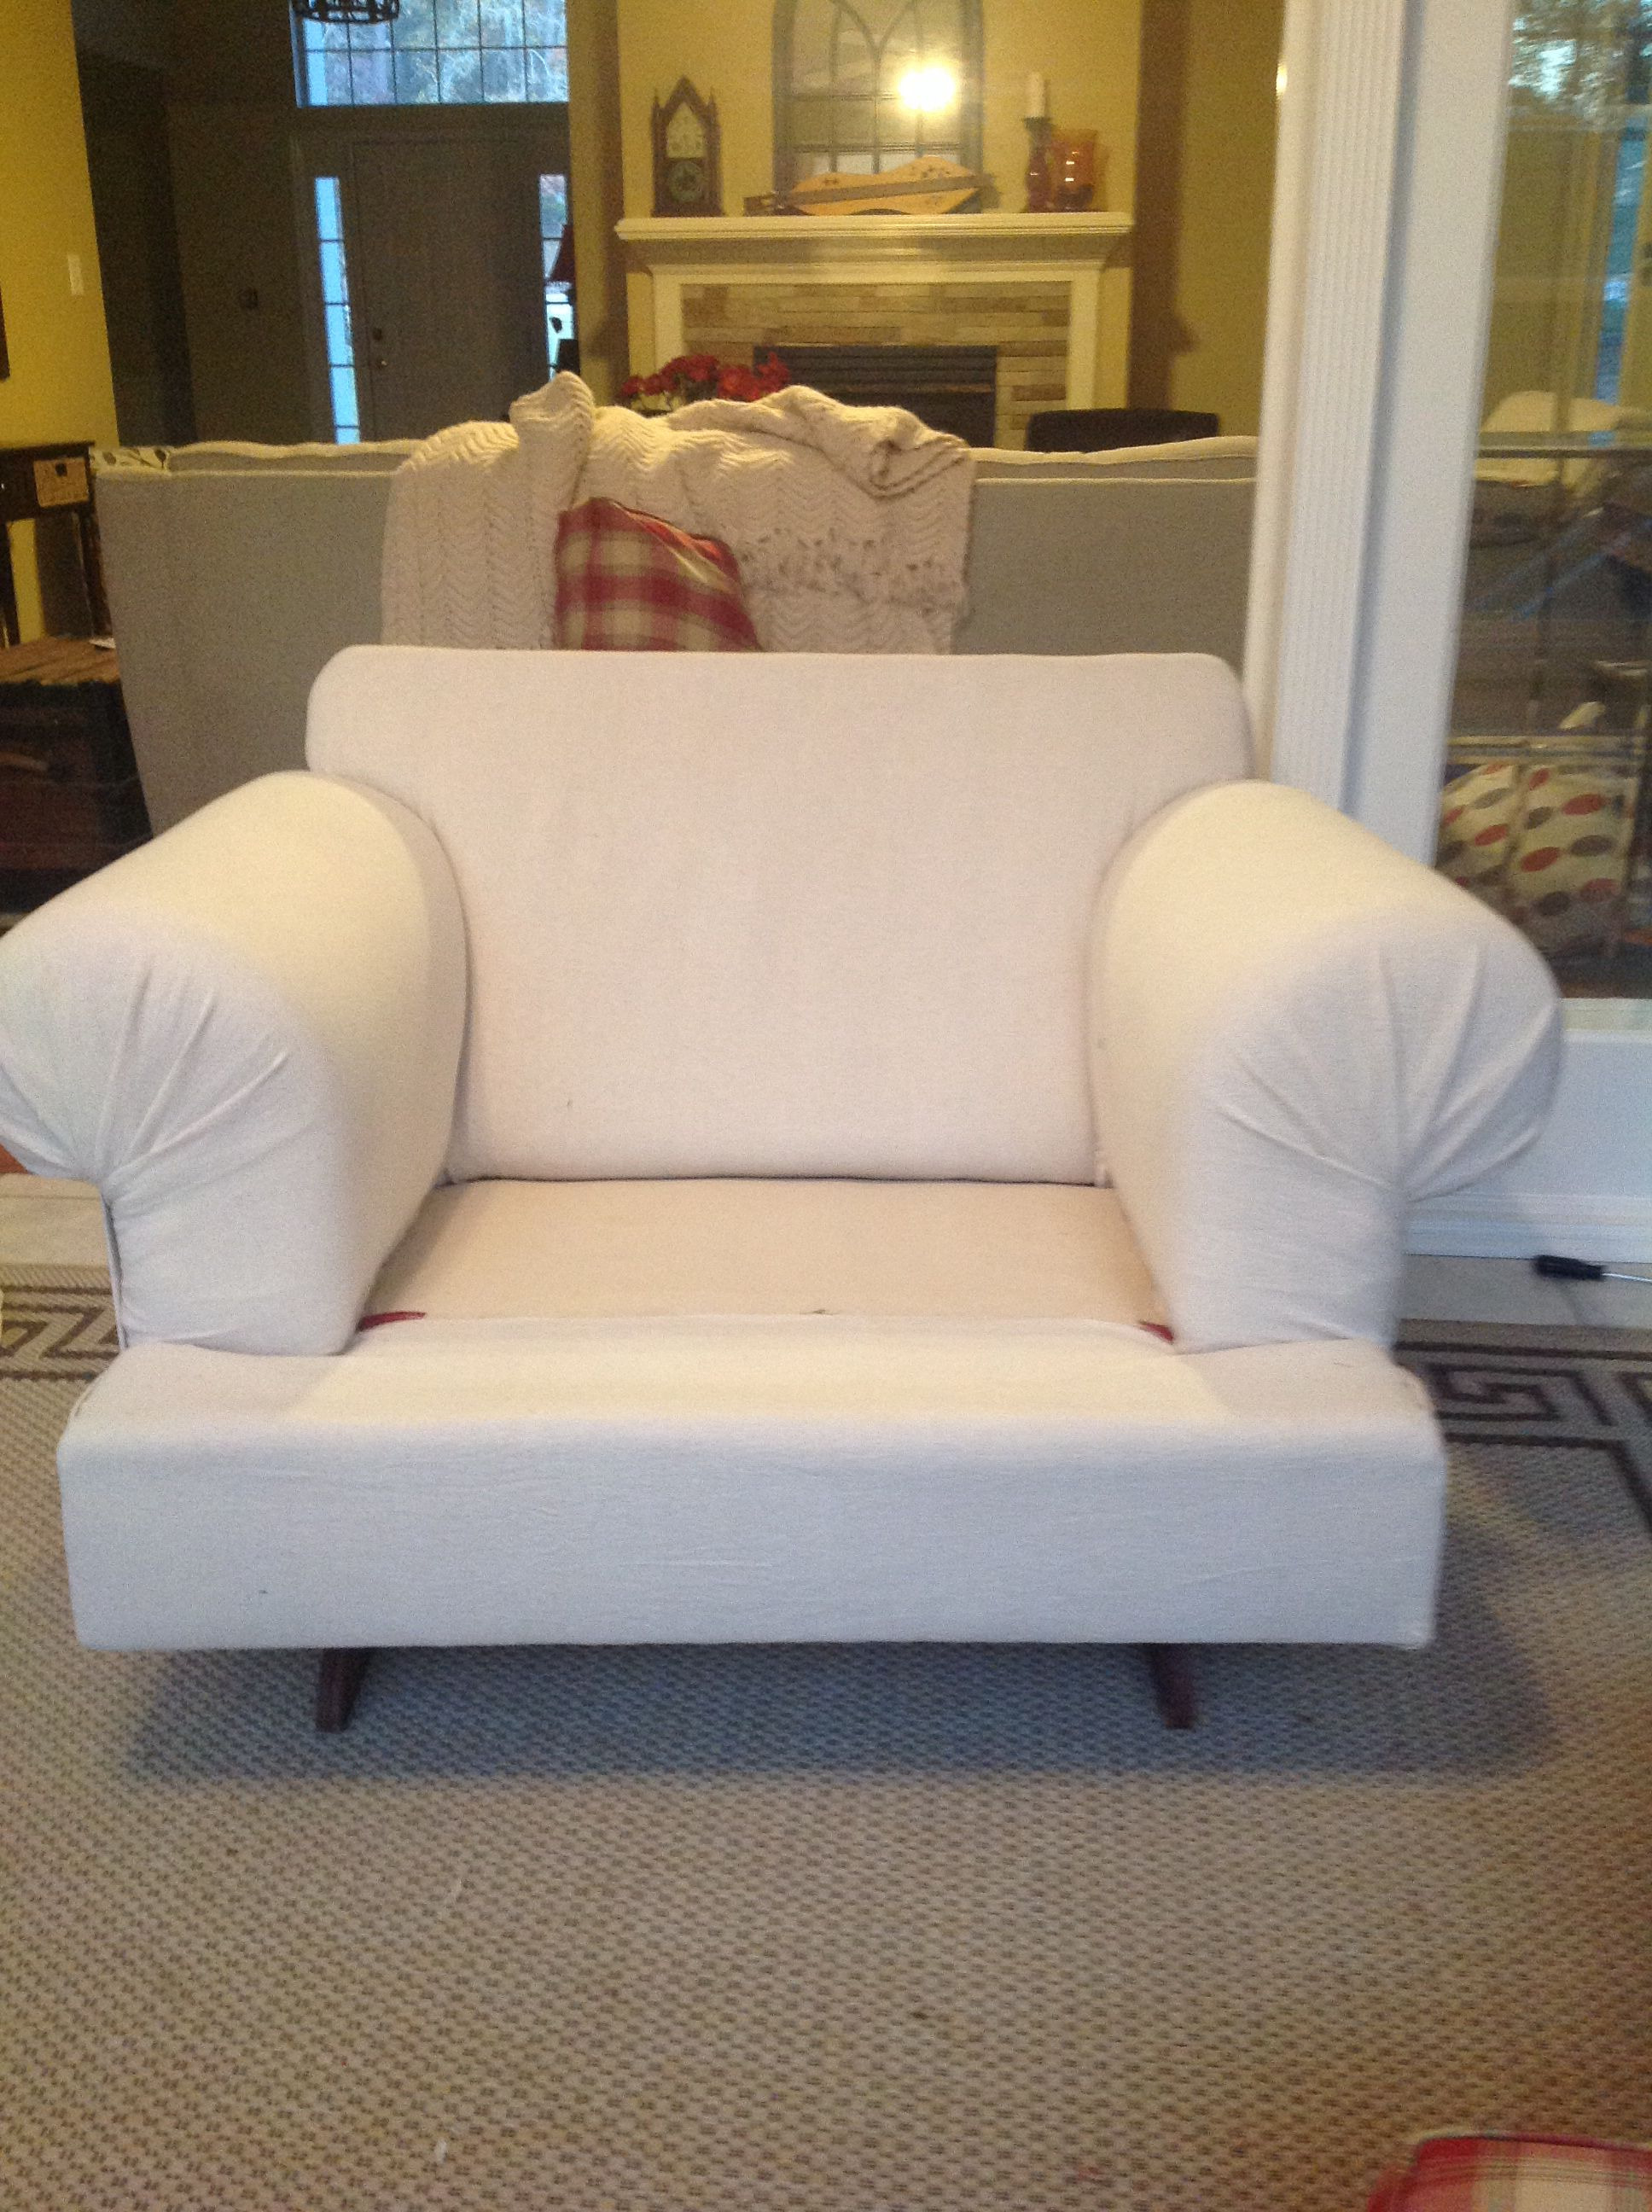 diy chair slipcover no sew white covers walmart arms seat back and based covered with painters drop cloth